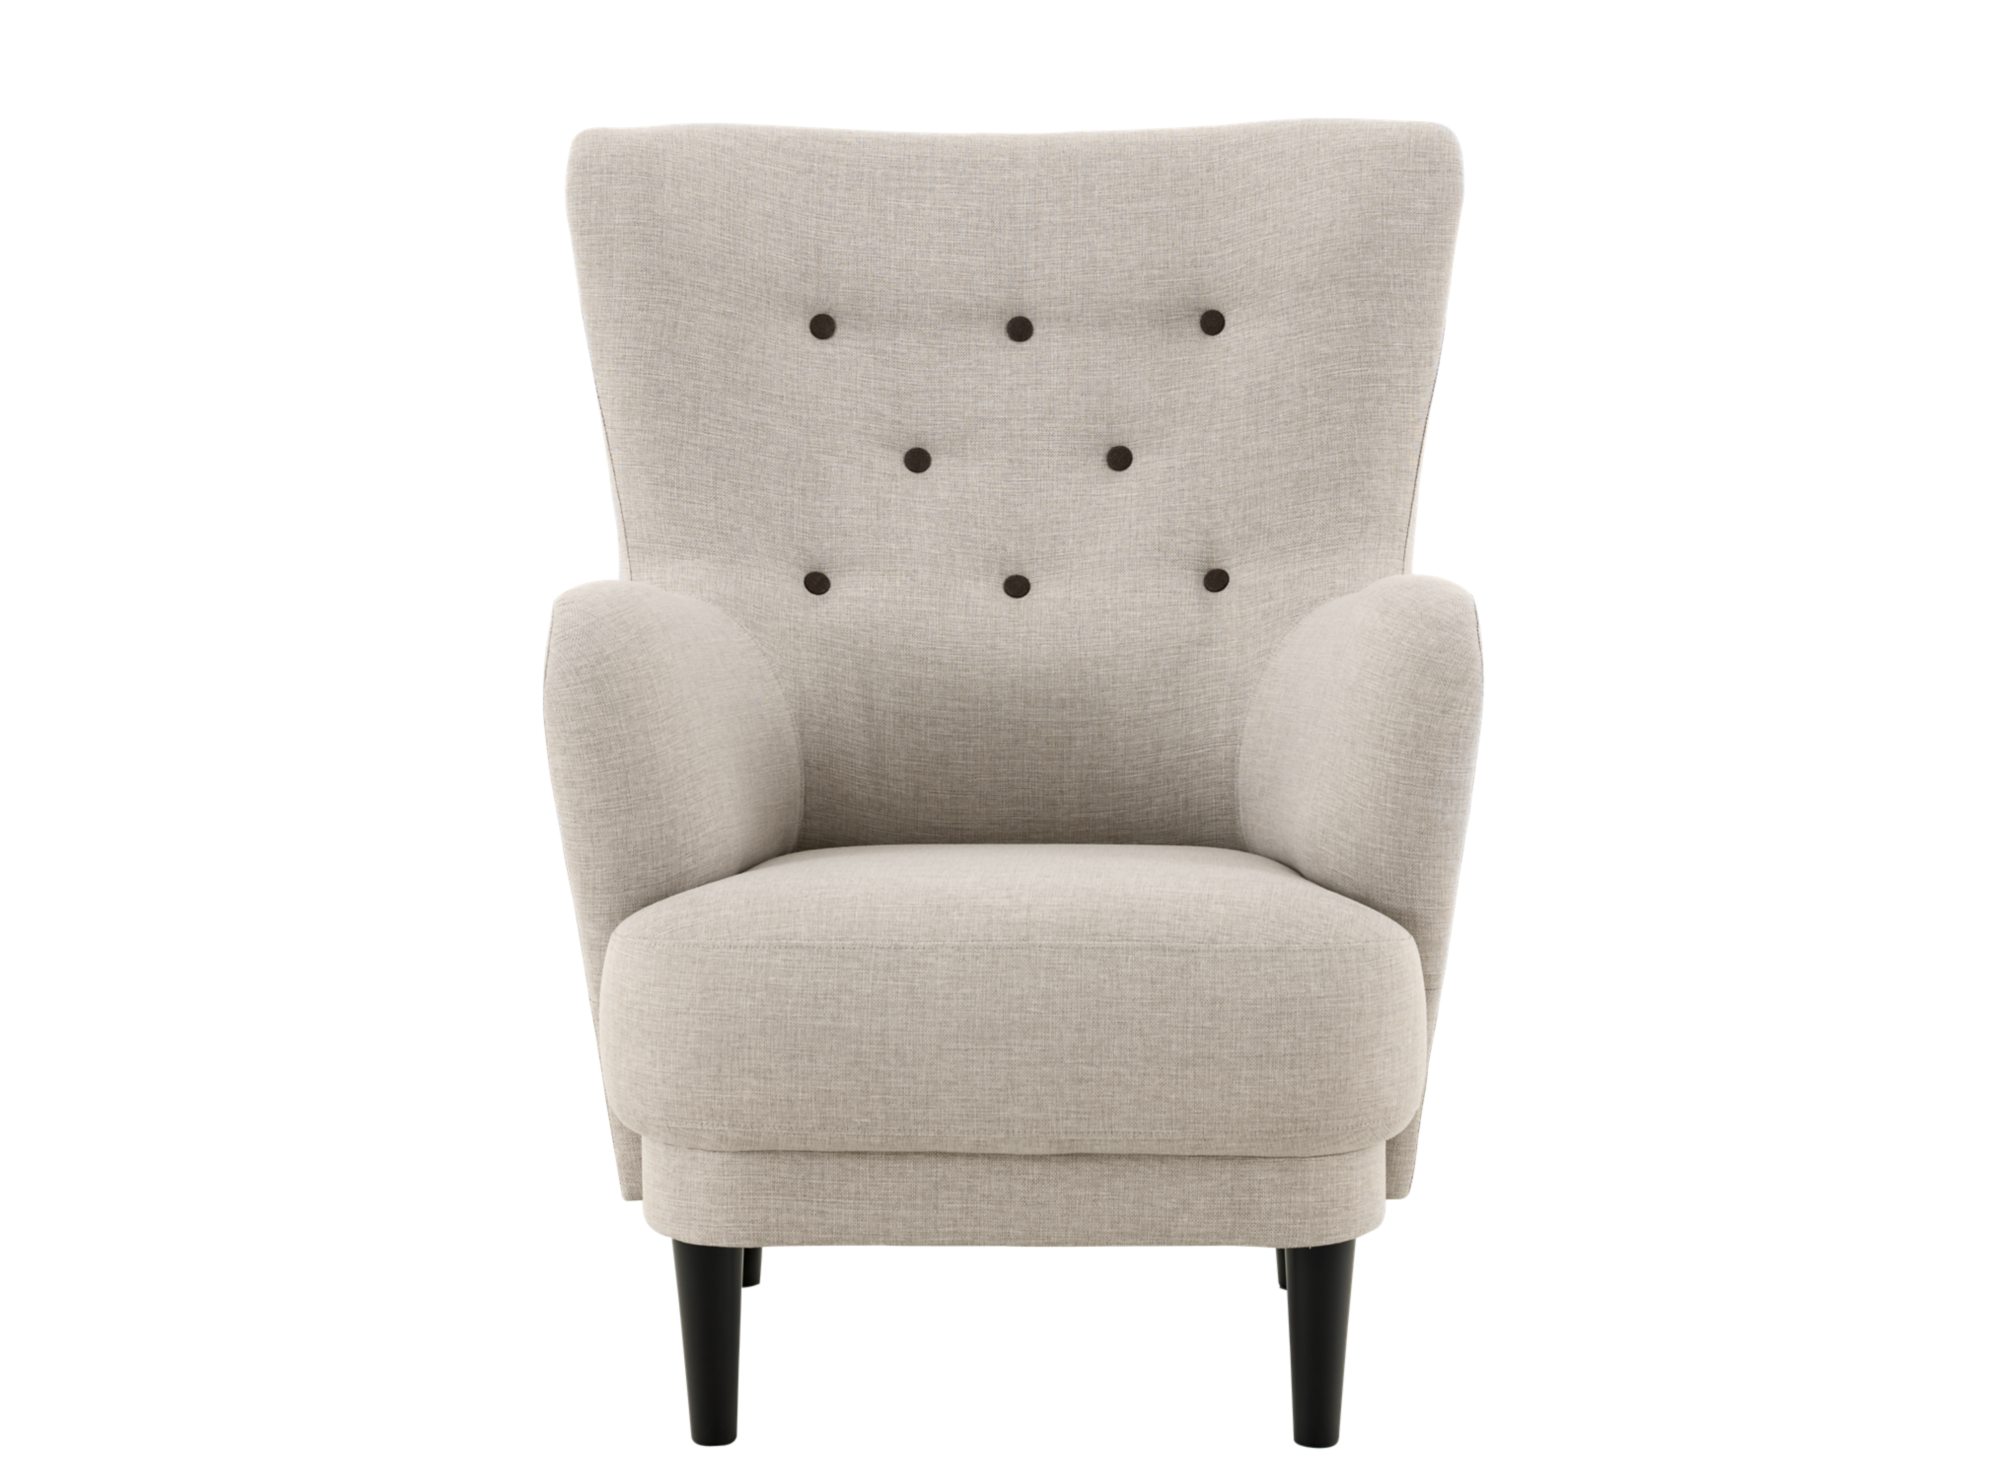 Emejing Fauteuil Salon Confortable Contemporary Design